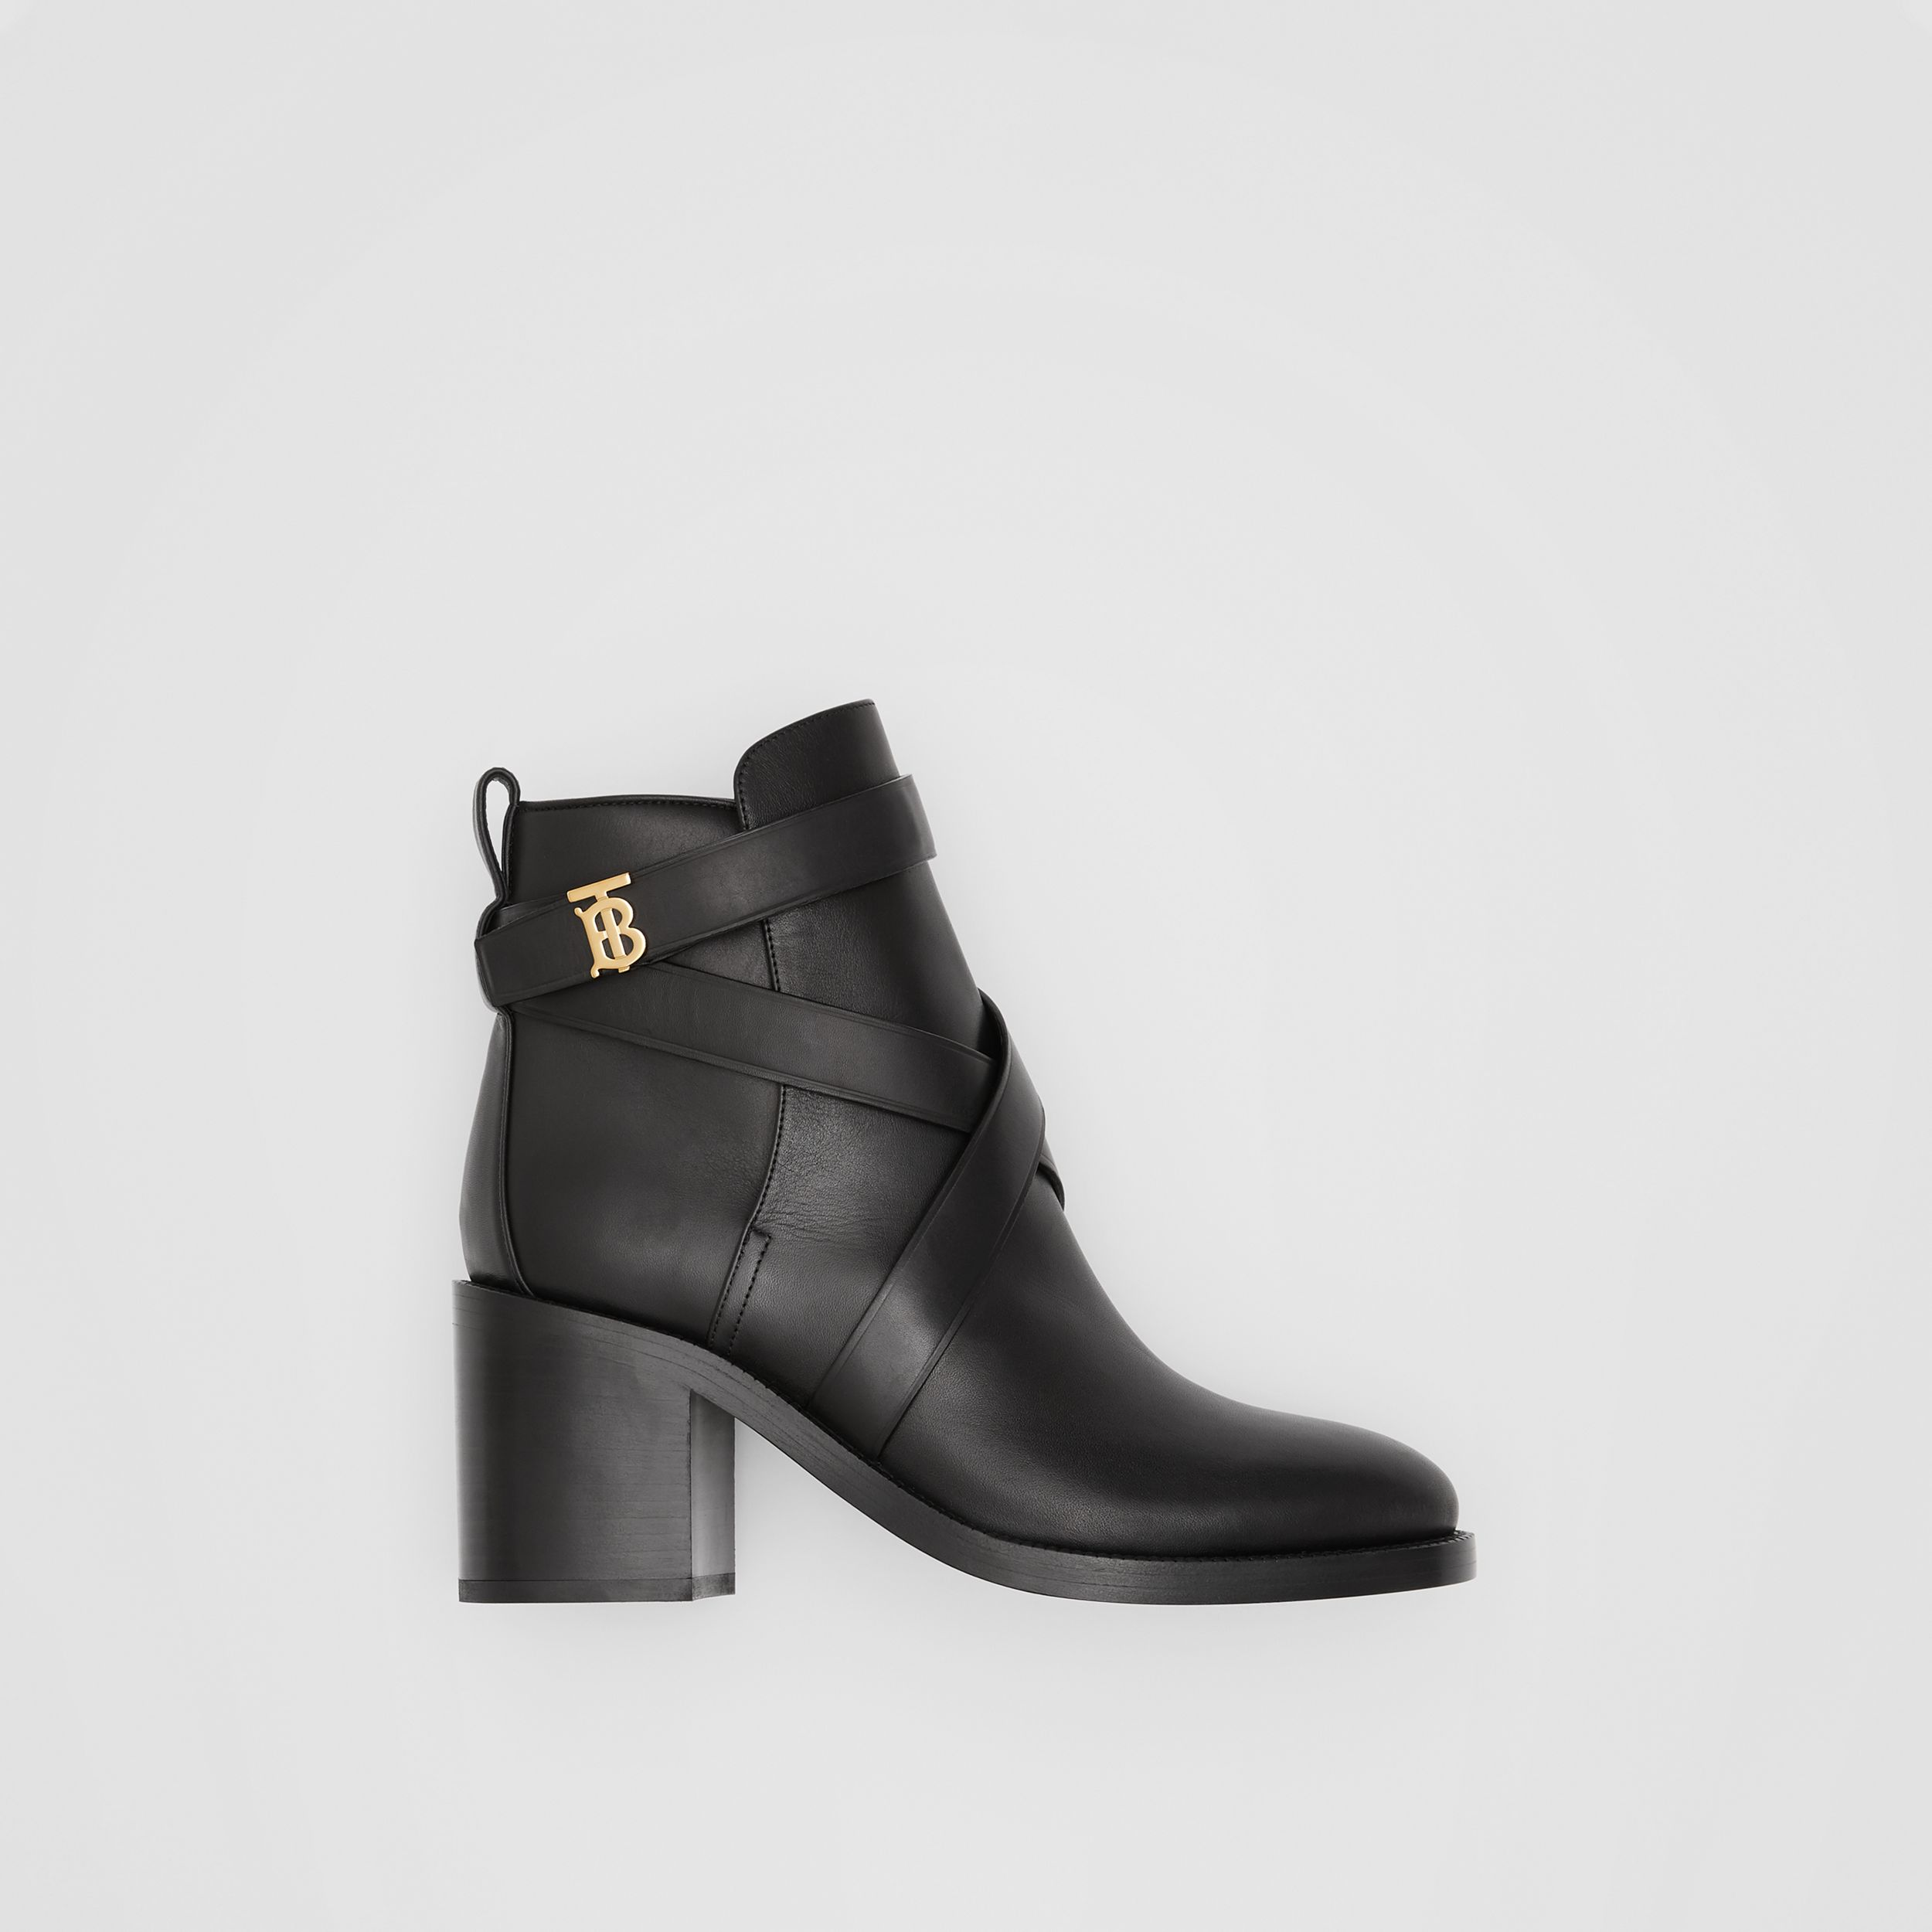 Monogram Motif Leather Ankle Boots in Black - Women | Burberry - 1